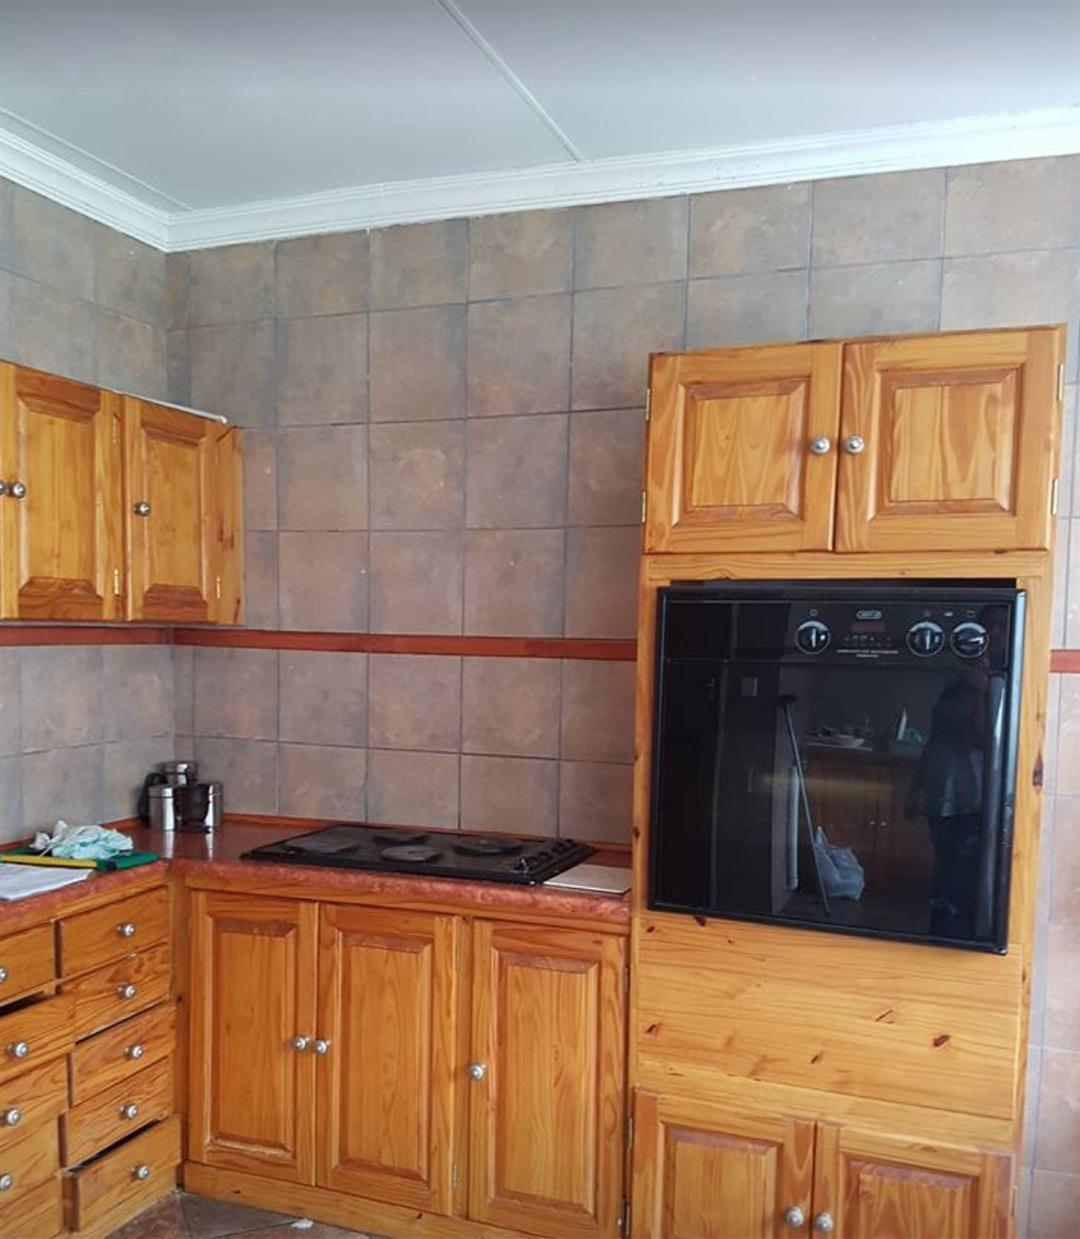 Glen Donald A H property for sale. Ref No: 13451439. Picture no 3